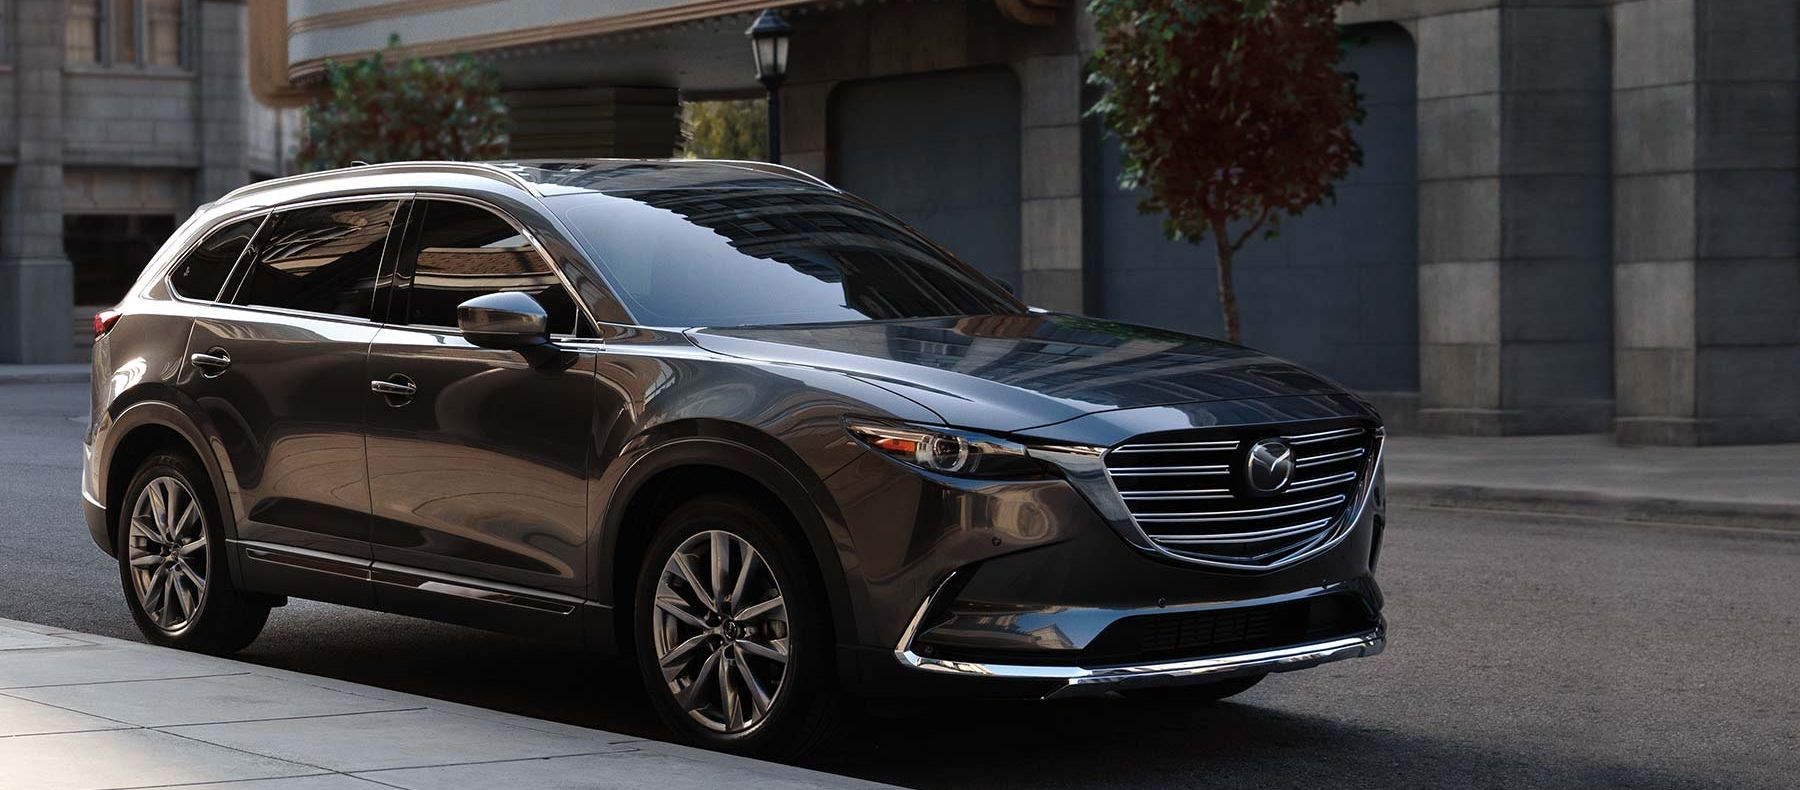 2019 Mazda CX-9 Financing in San Antonio, TX